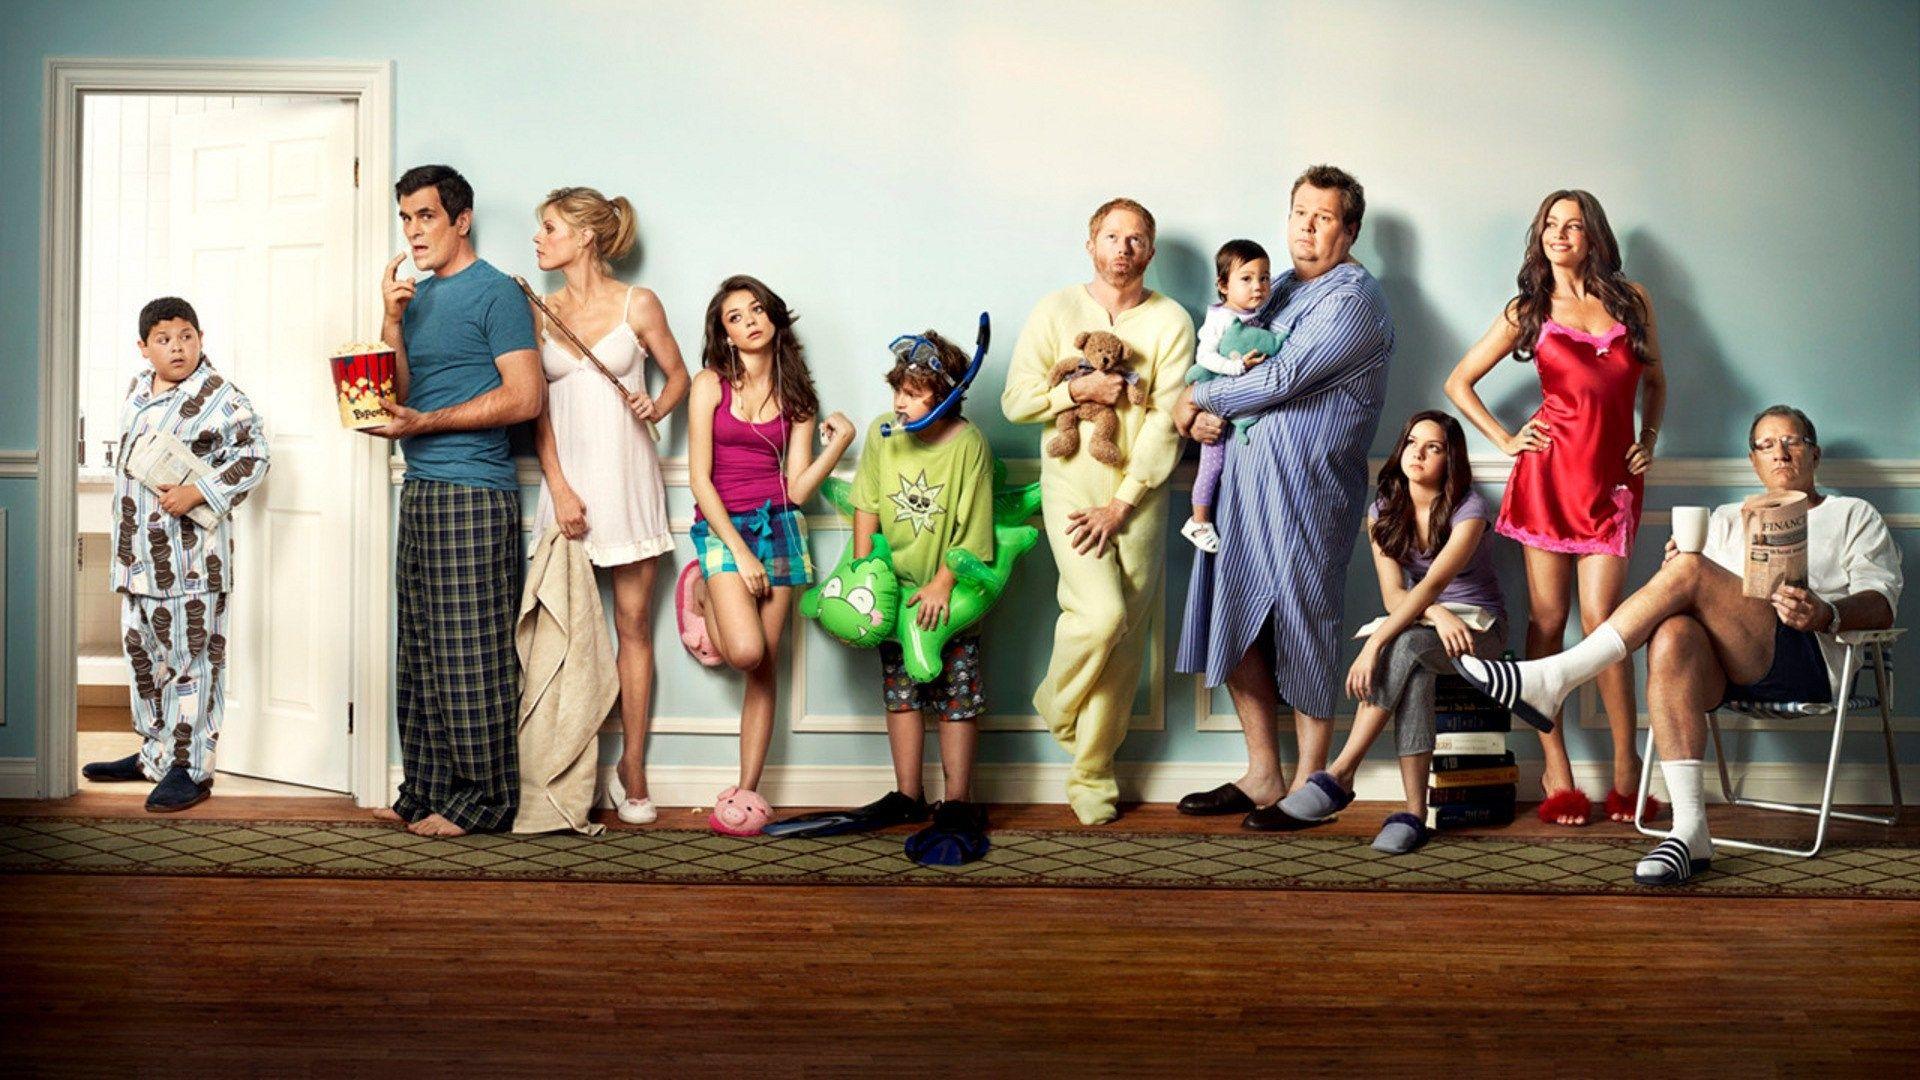 1920x1080 Free Computer Wallpaper For Modern Family Modern Family Movies And Tv Shows Modern